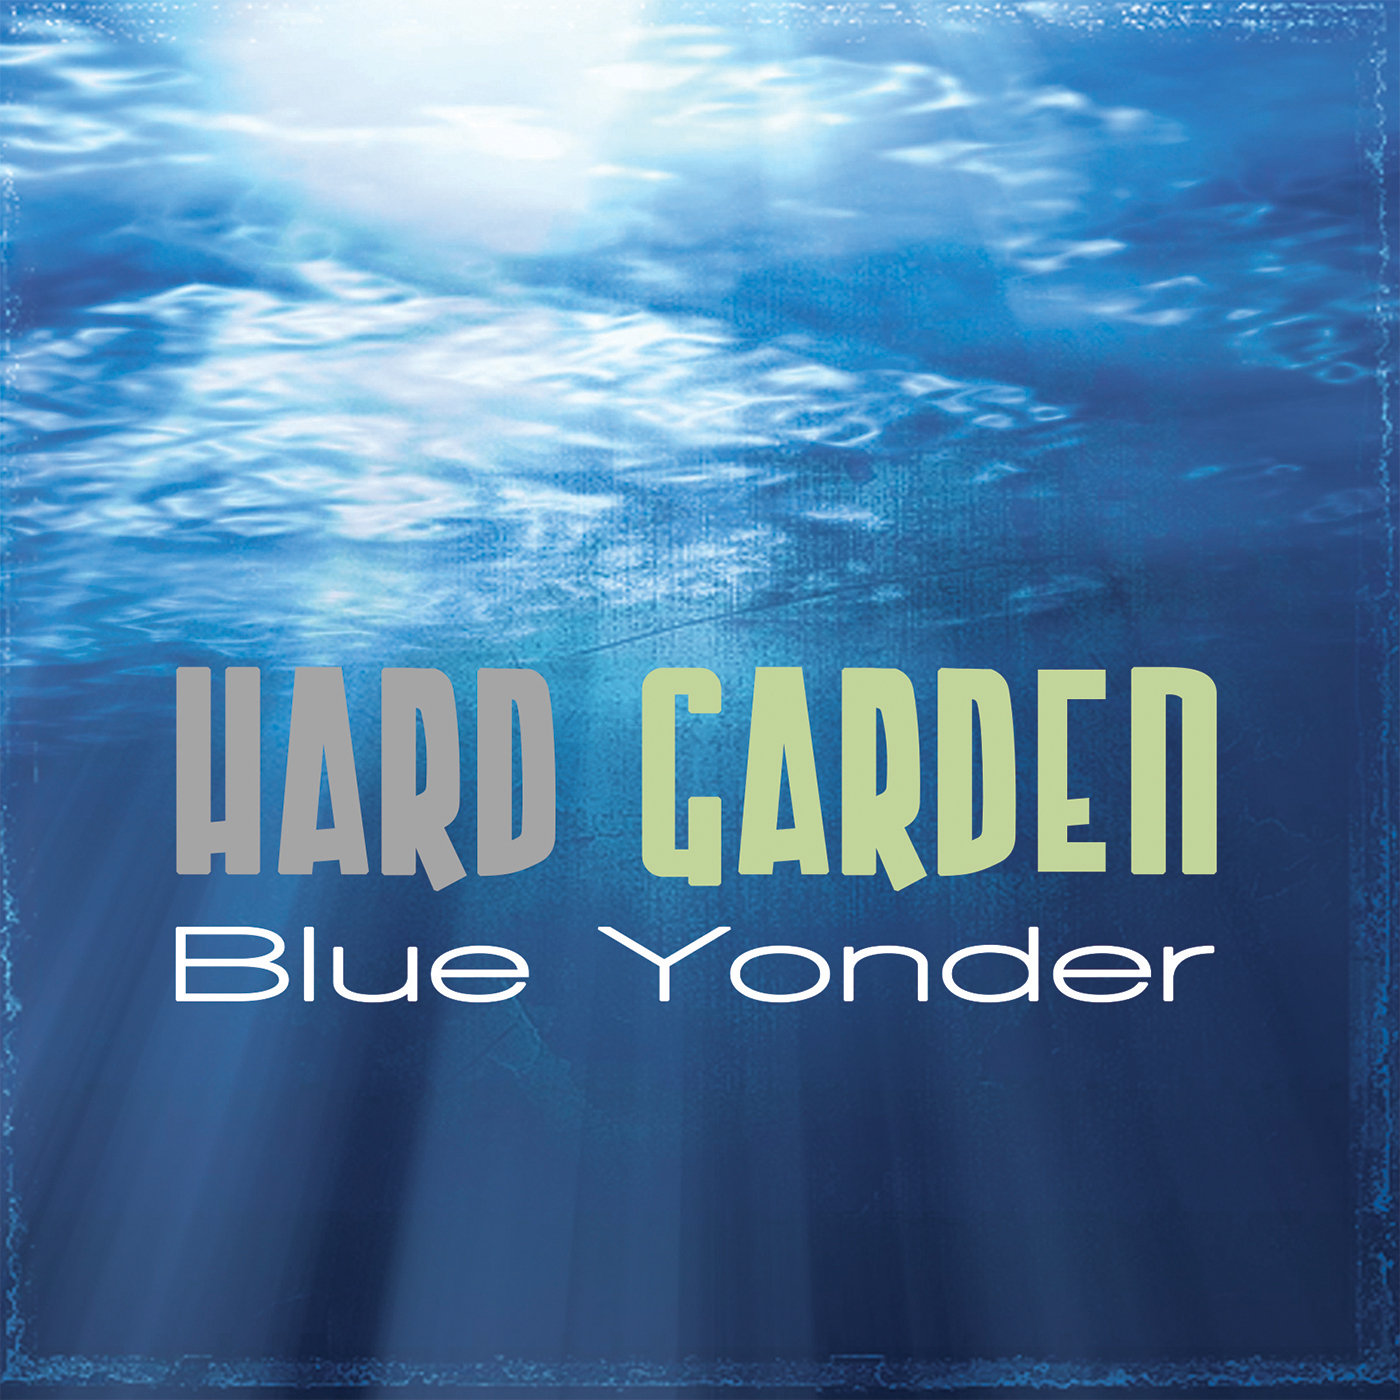 Blue Yonder CD Cover